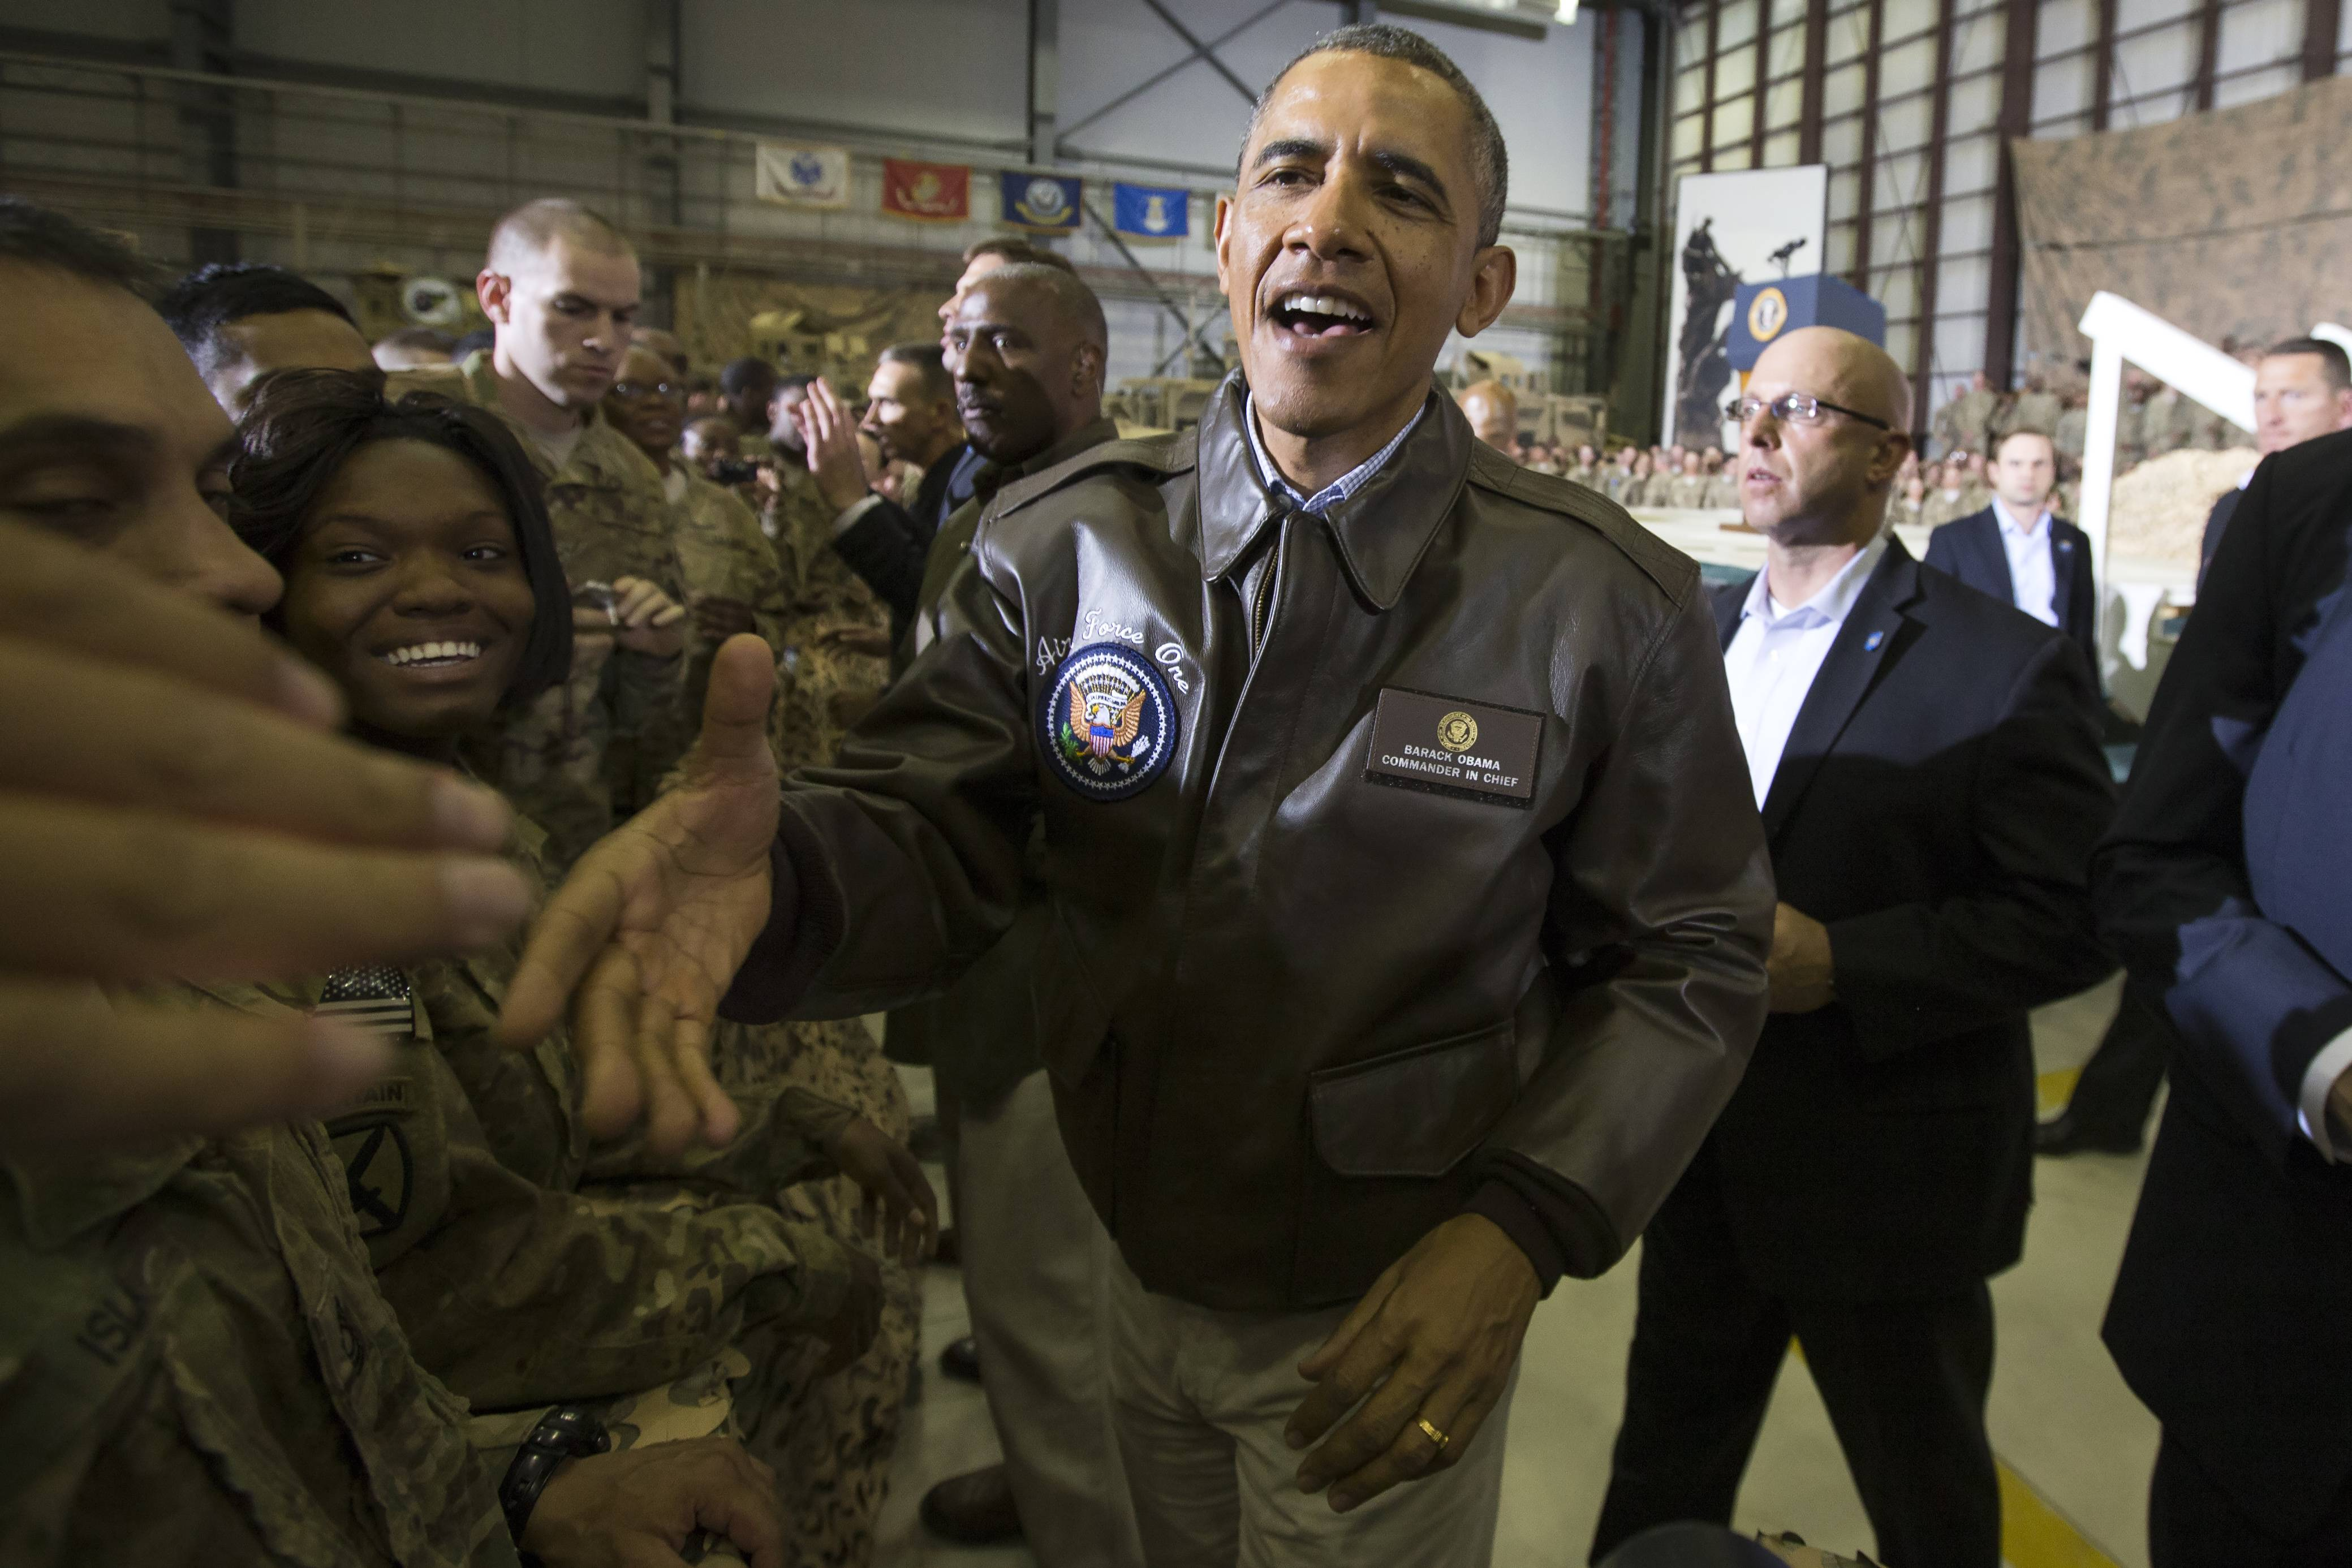 President Barack Obama shakes hands during a troop rally at Bagram Air Field during an unannounced visit, on Sunday.